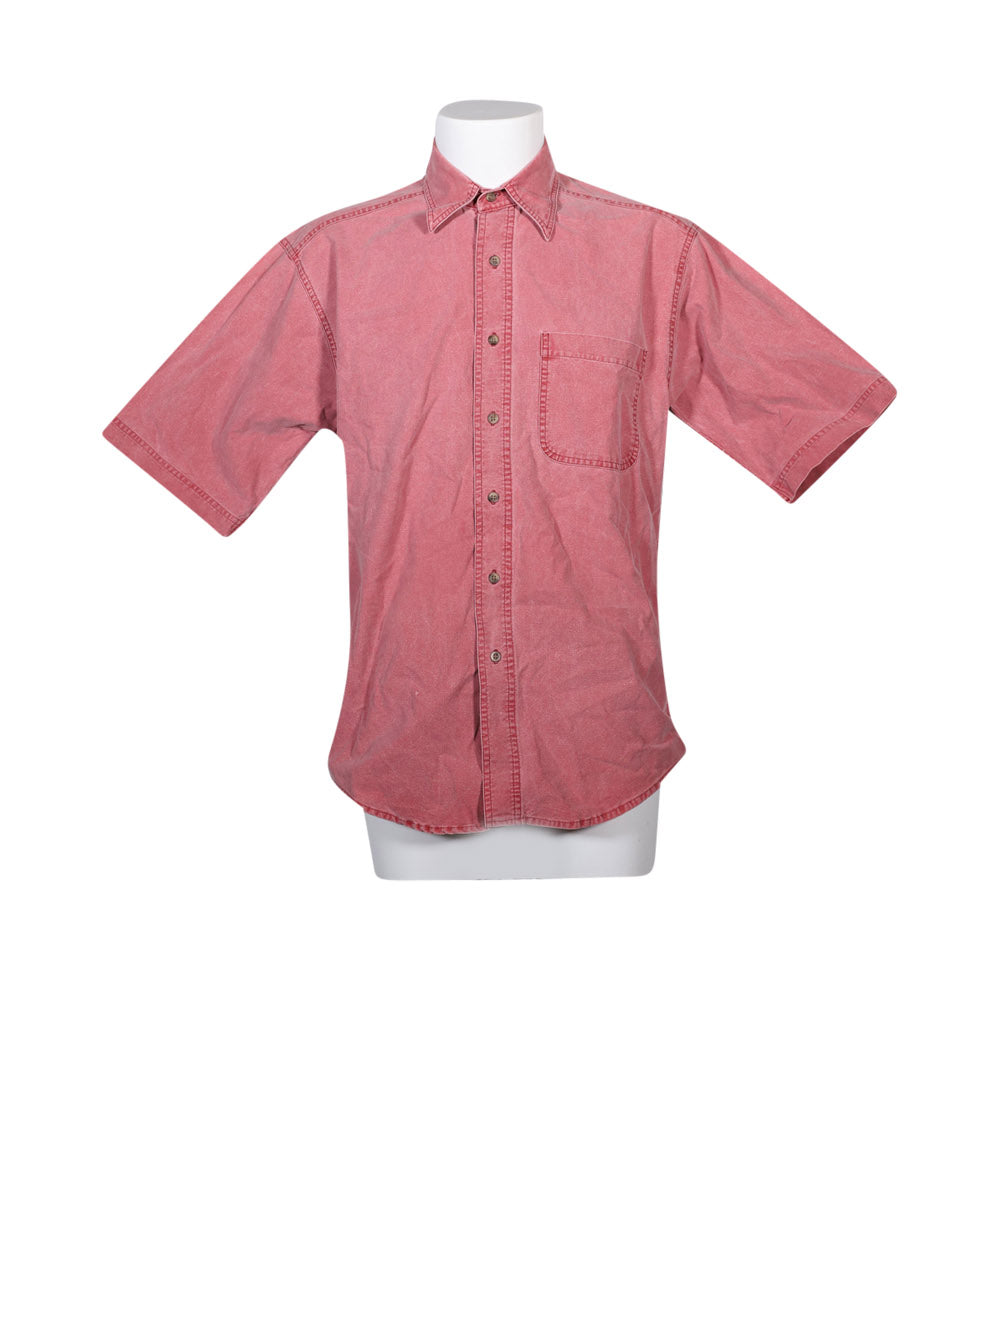 Front photo of Preloved Woolrich Pink Man's shirt - size 38/M